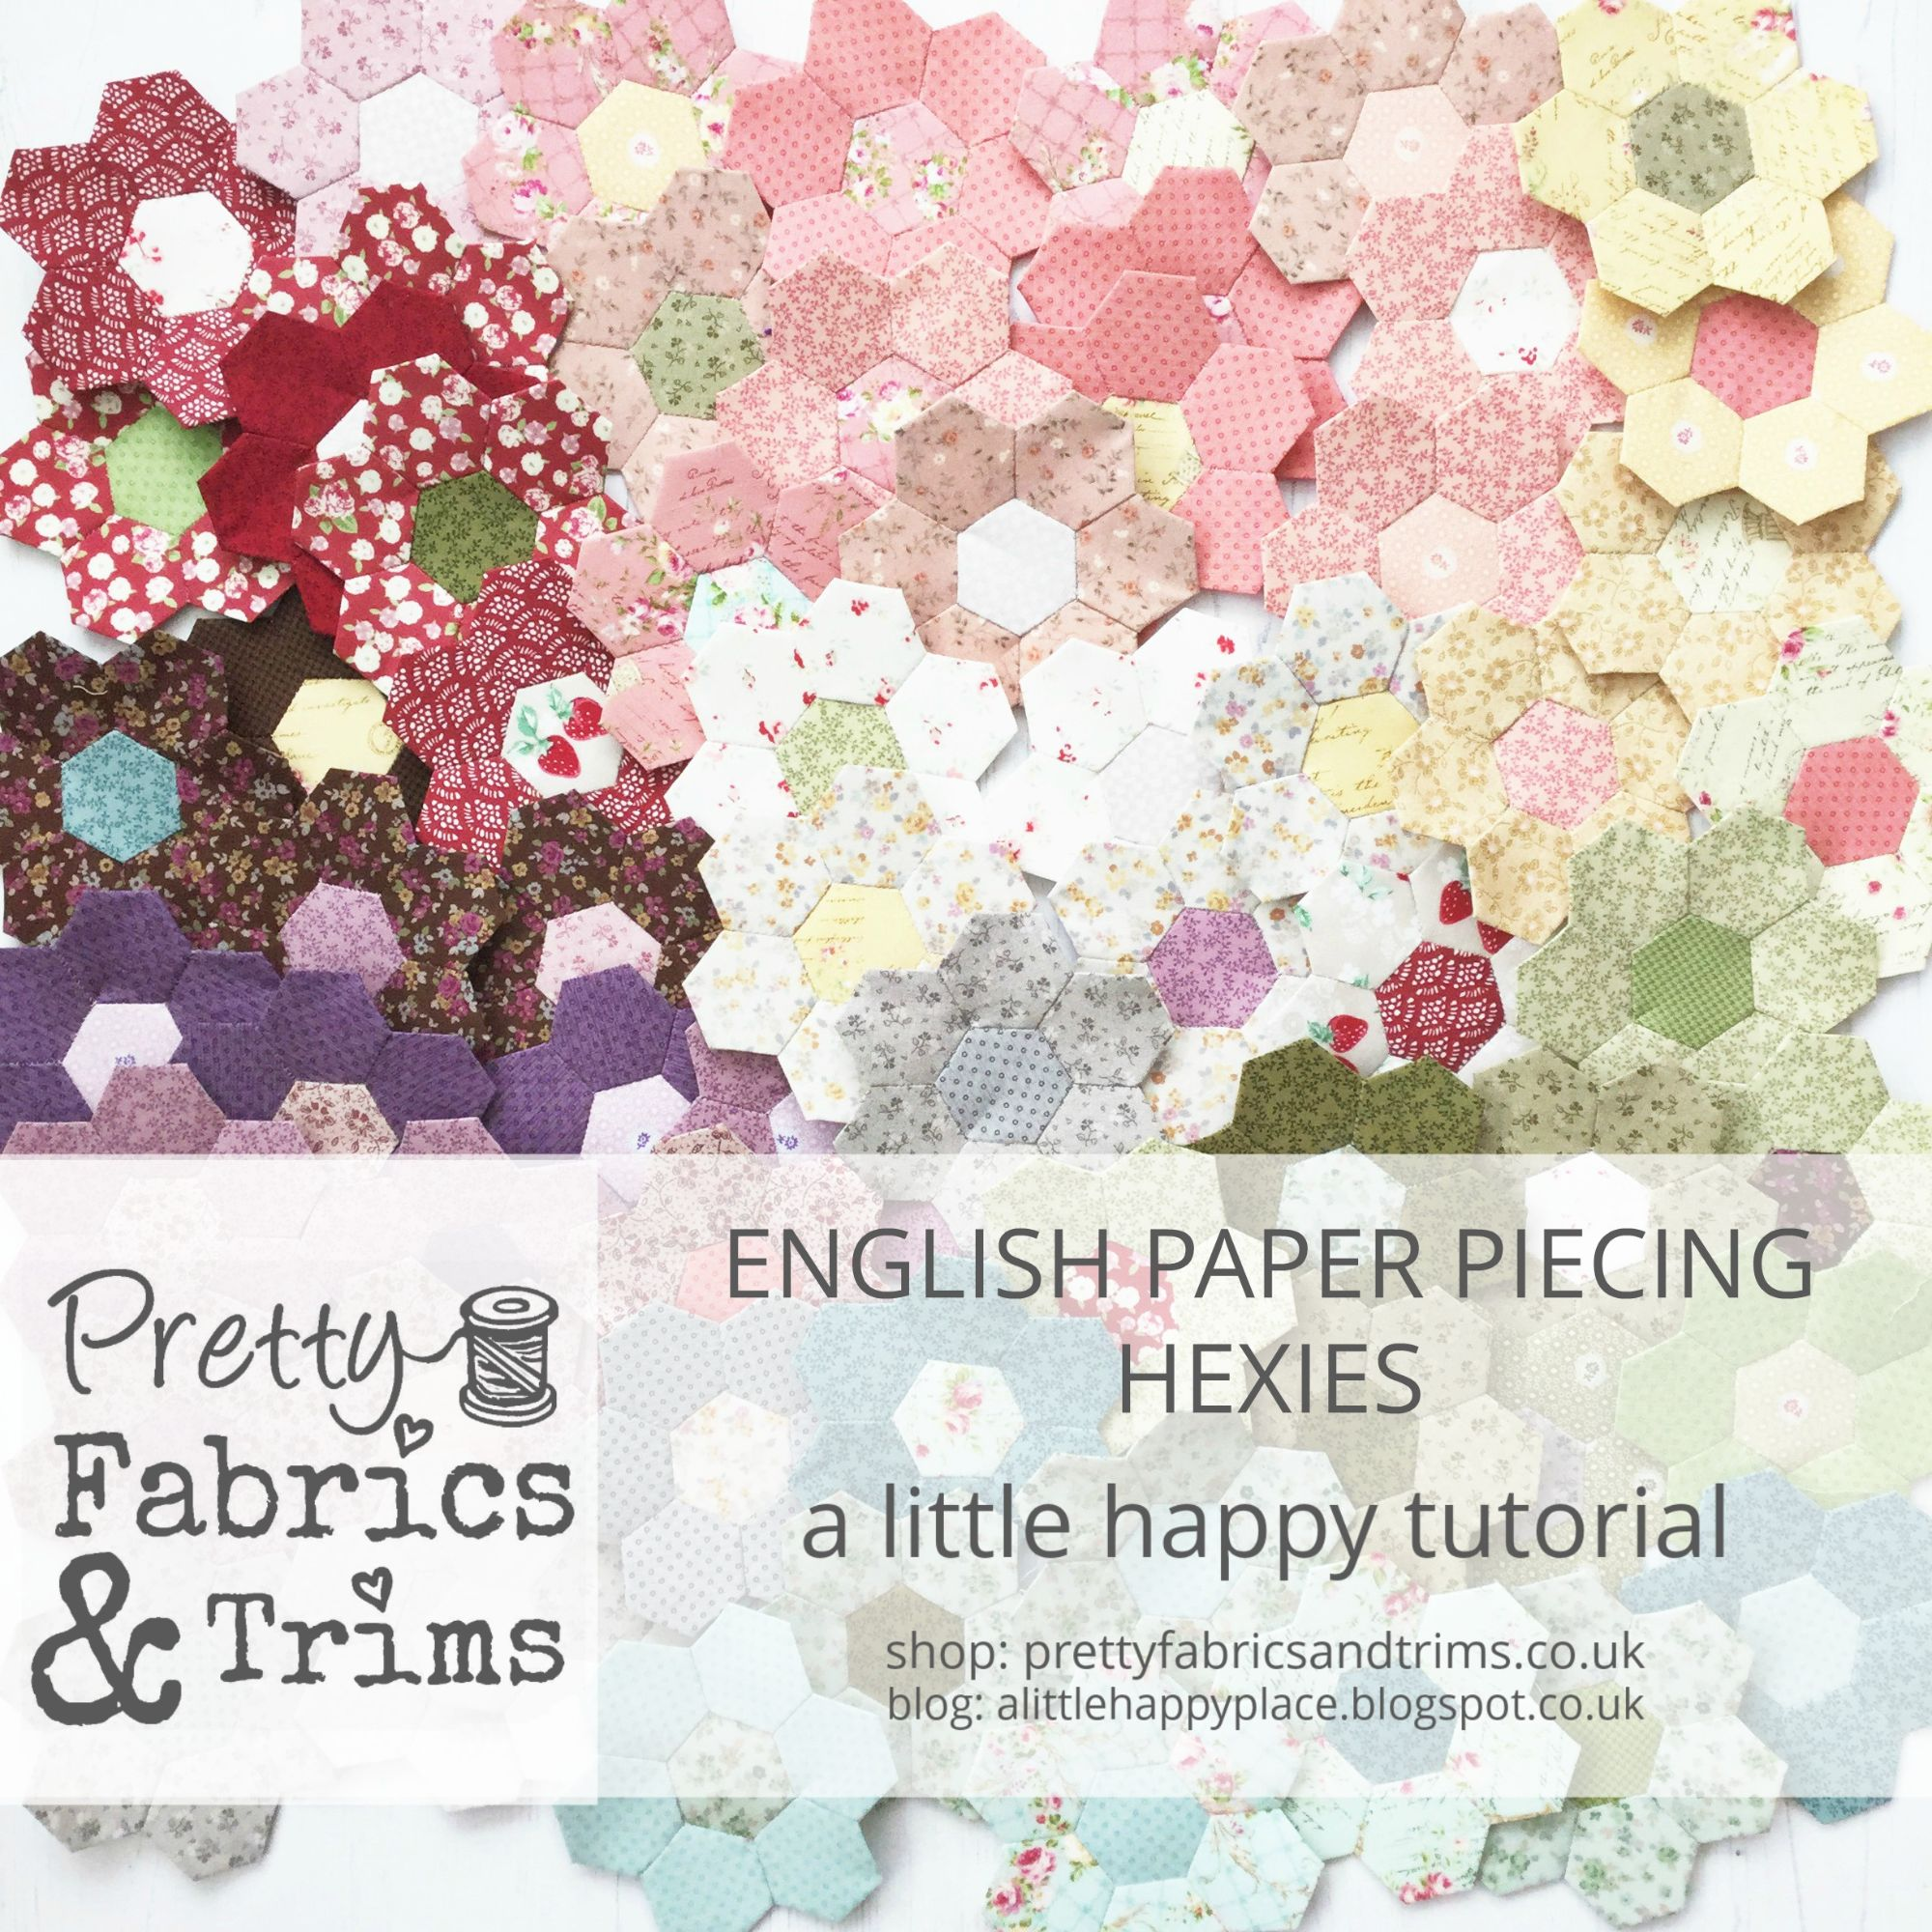 How to make English Paper Pieced Hexies